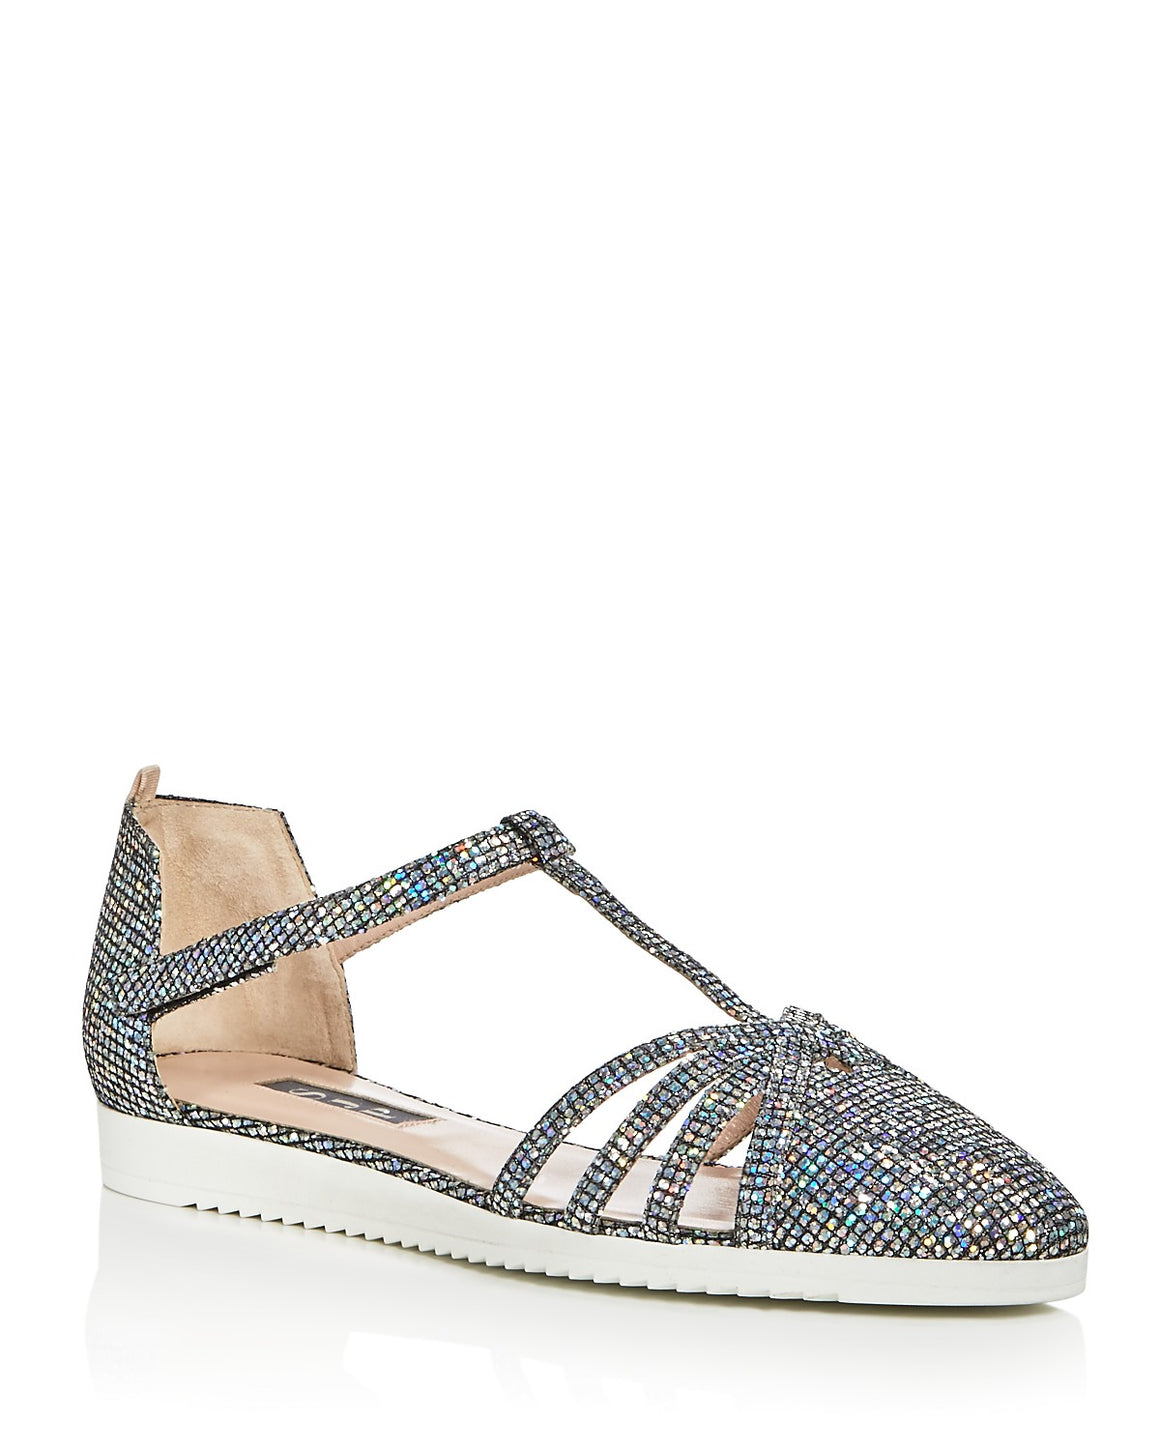 Meteor Scintillate Flats-Shoes-SJP Collection-Max & Riley